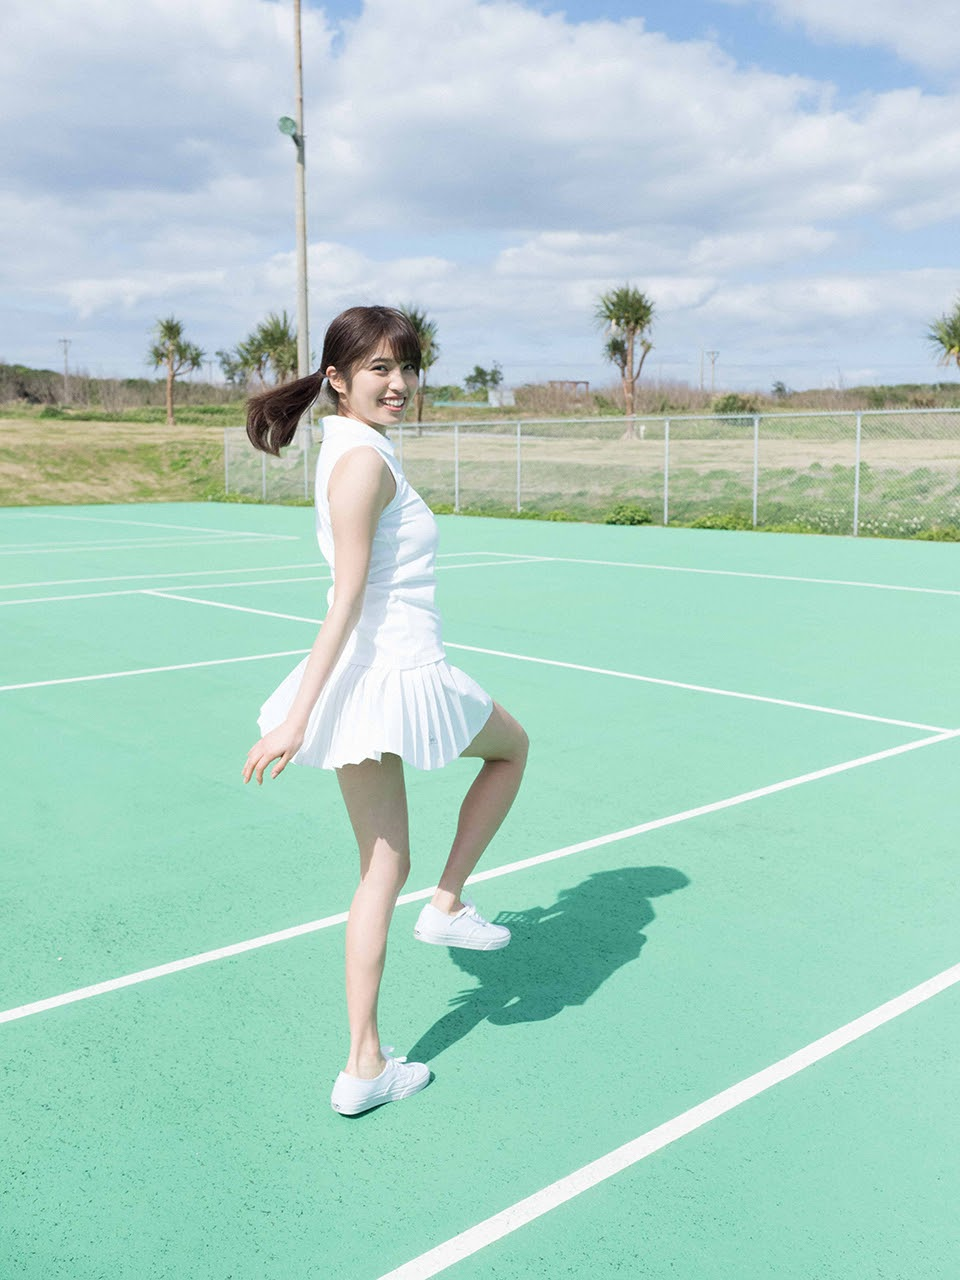 Gravure world treasure BODY Dynamic Miyubai pops up in winter in Okinawa106